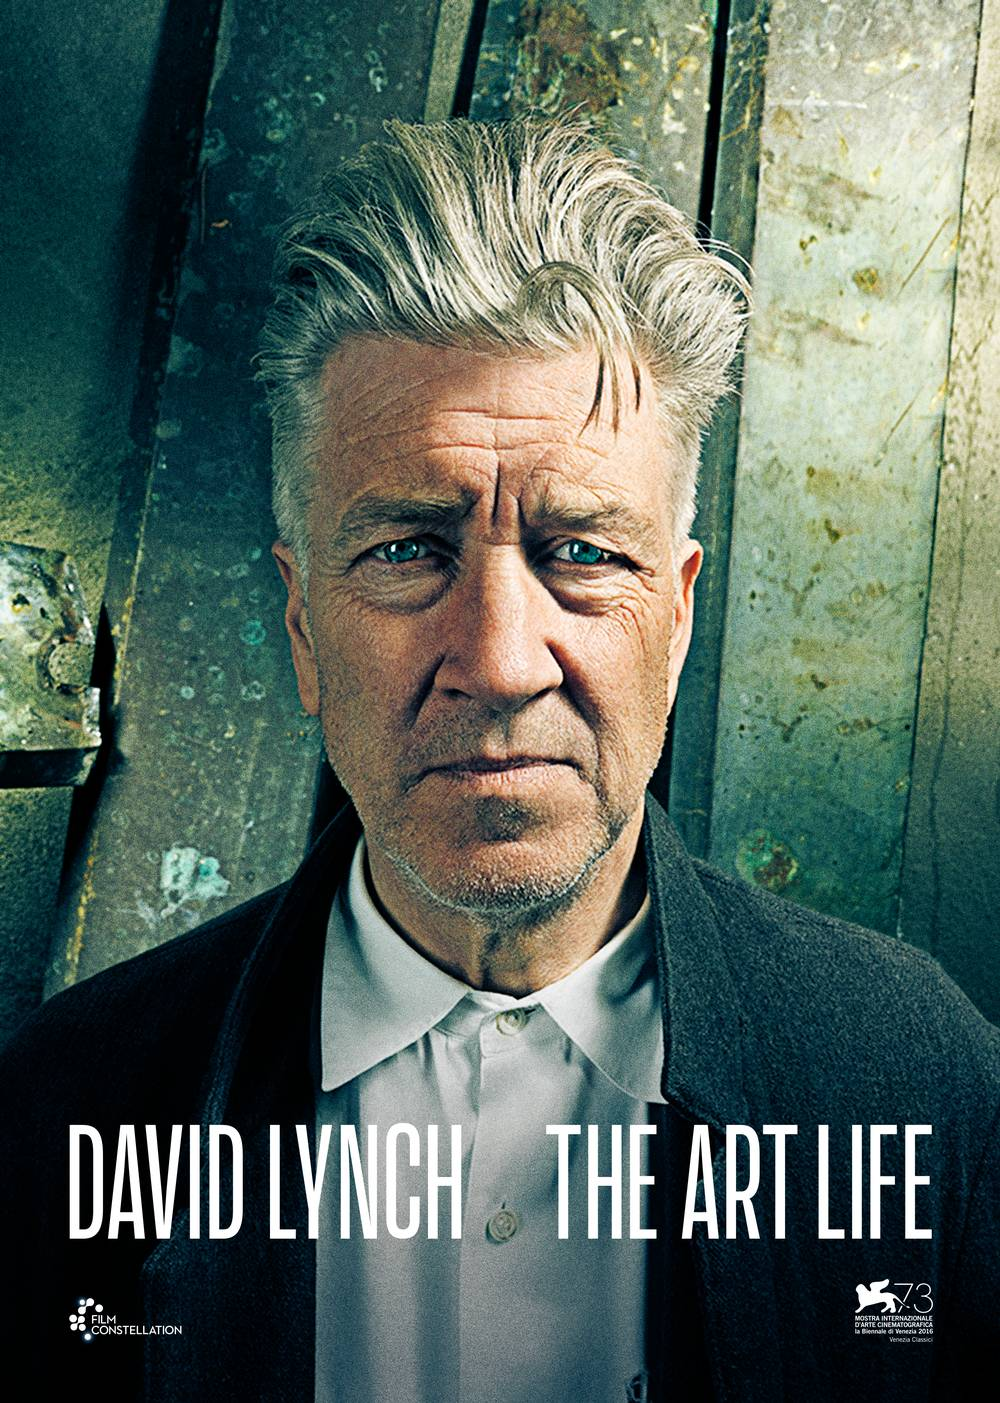 Davlid Lynch - The Art Life (internasjonal plakat)